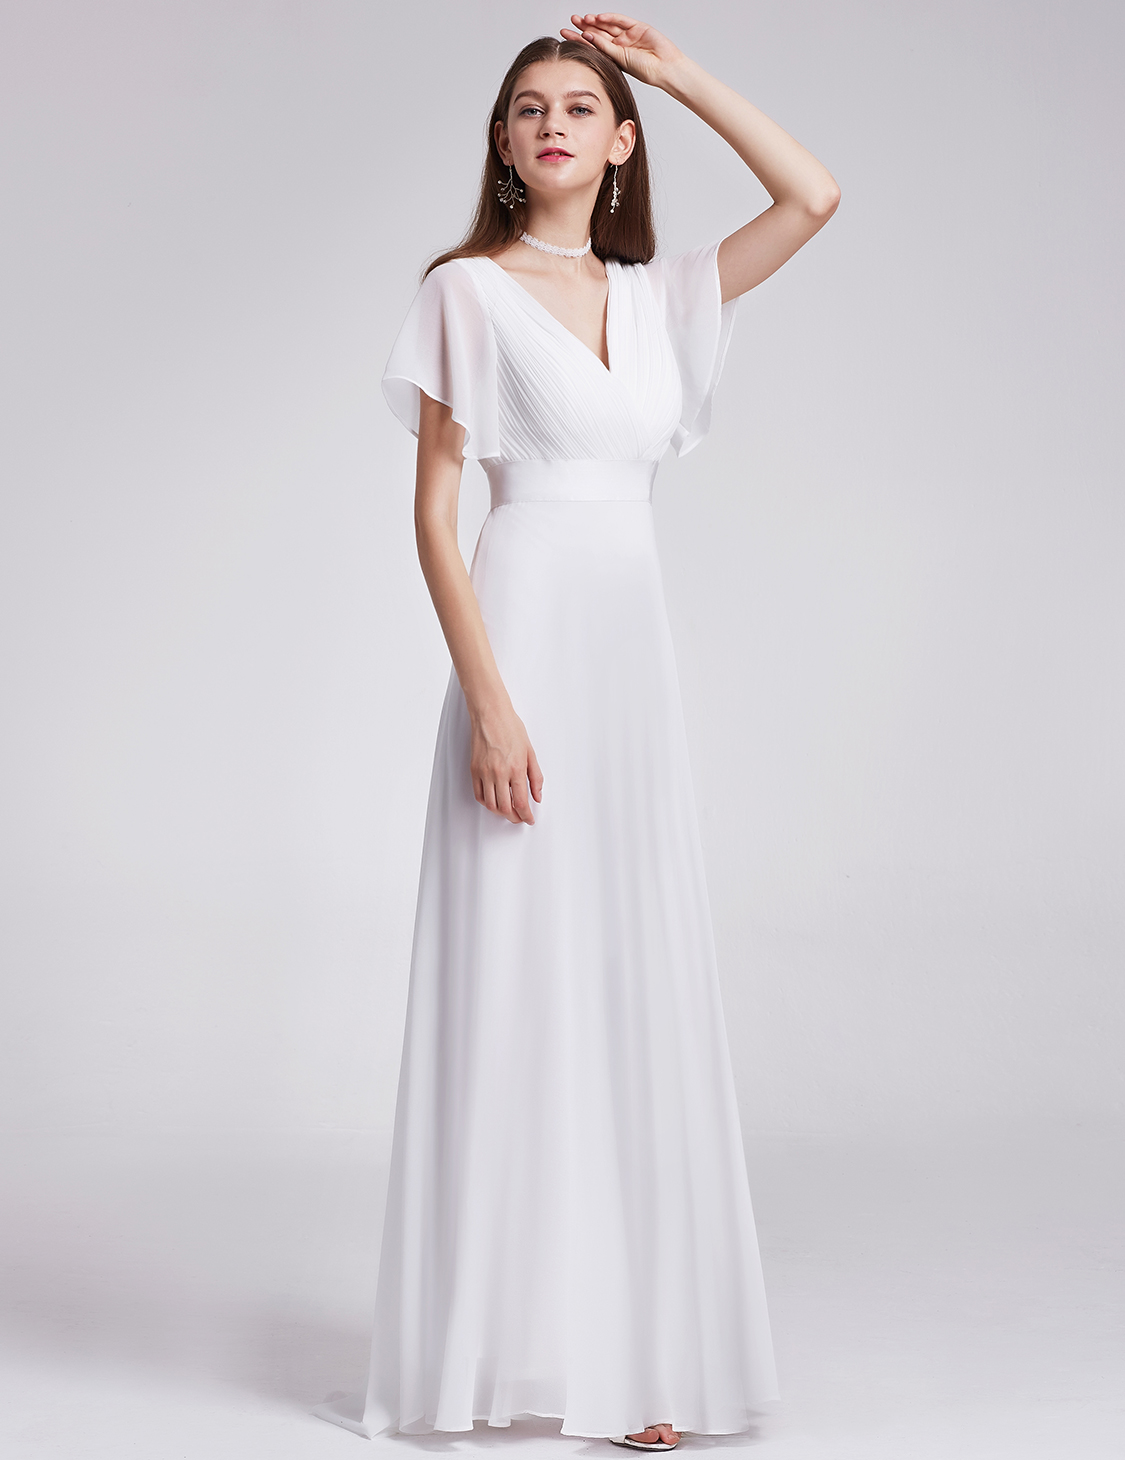 US Long White V-neck Evening Party Dresses Cocktail Prom ...